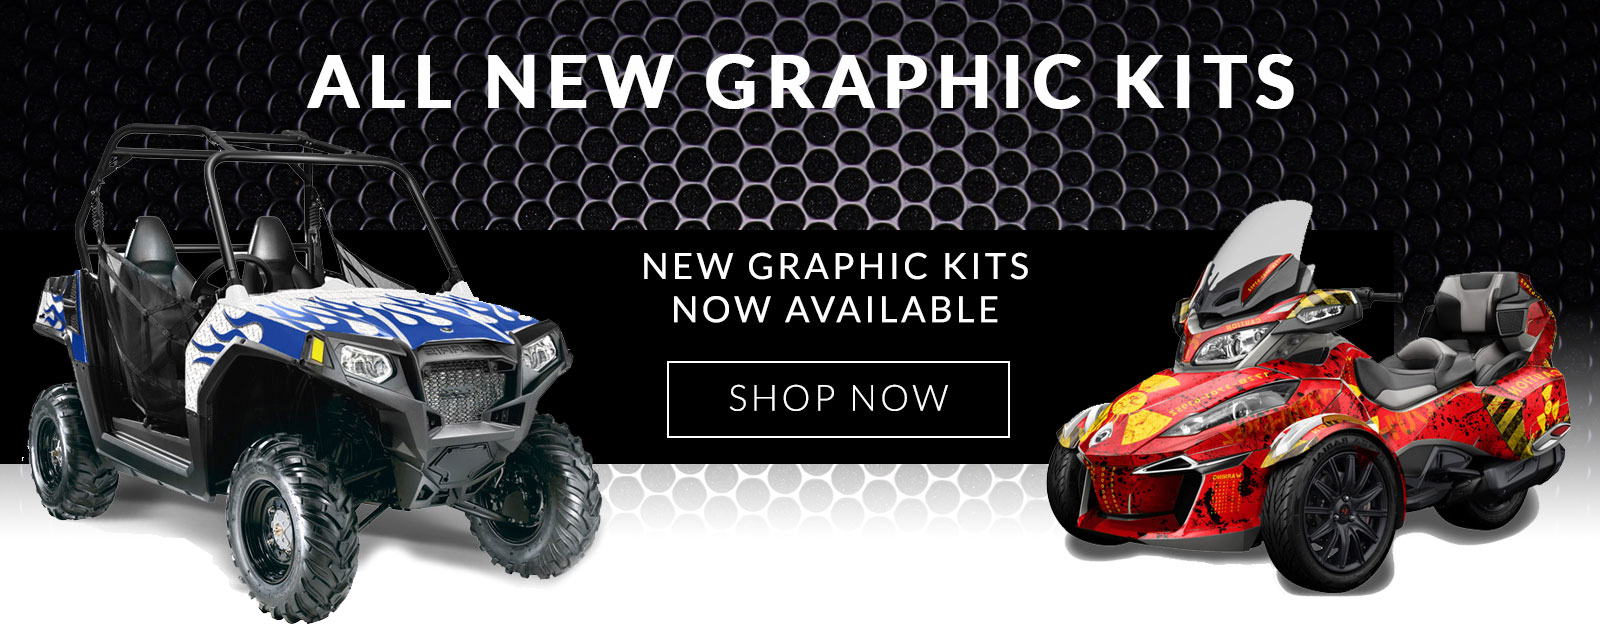 New Graphic Kits Available